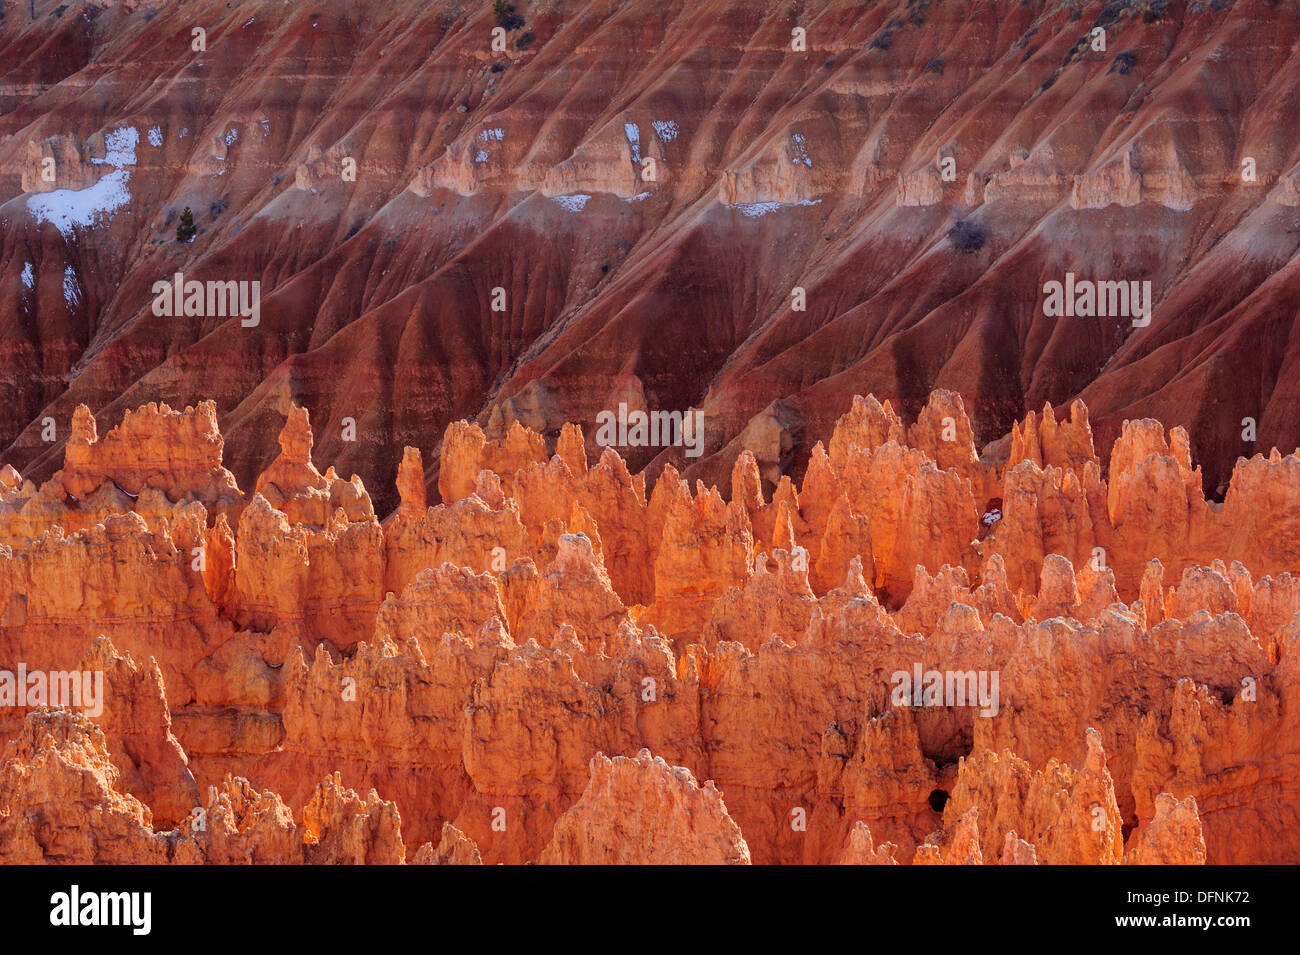 Rock spires in Bryce Canyon, Bryce Canyon National Park, Utah, Southwest, USA, America - Stock Image